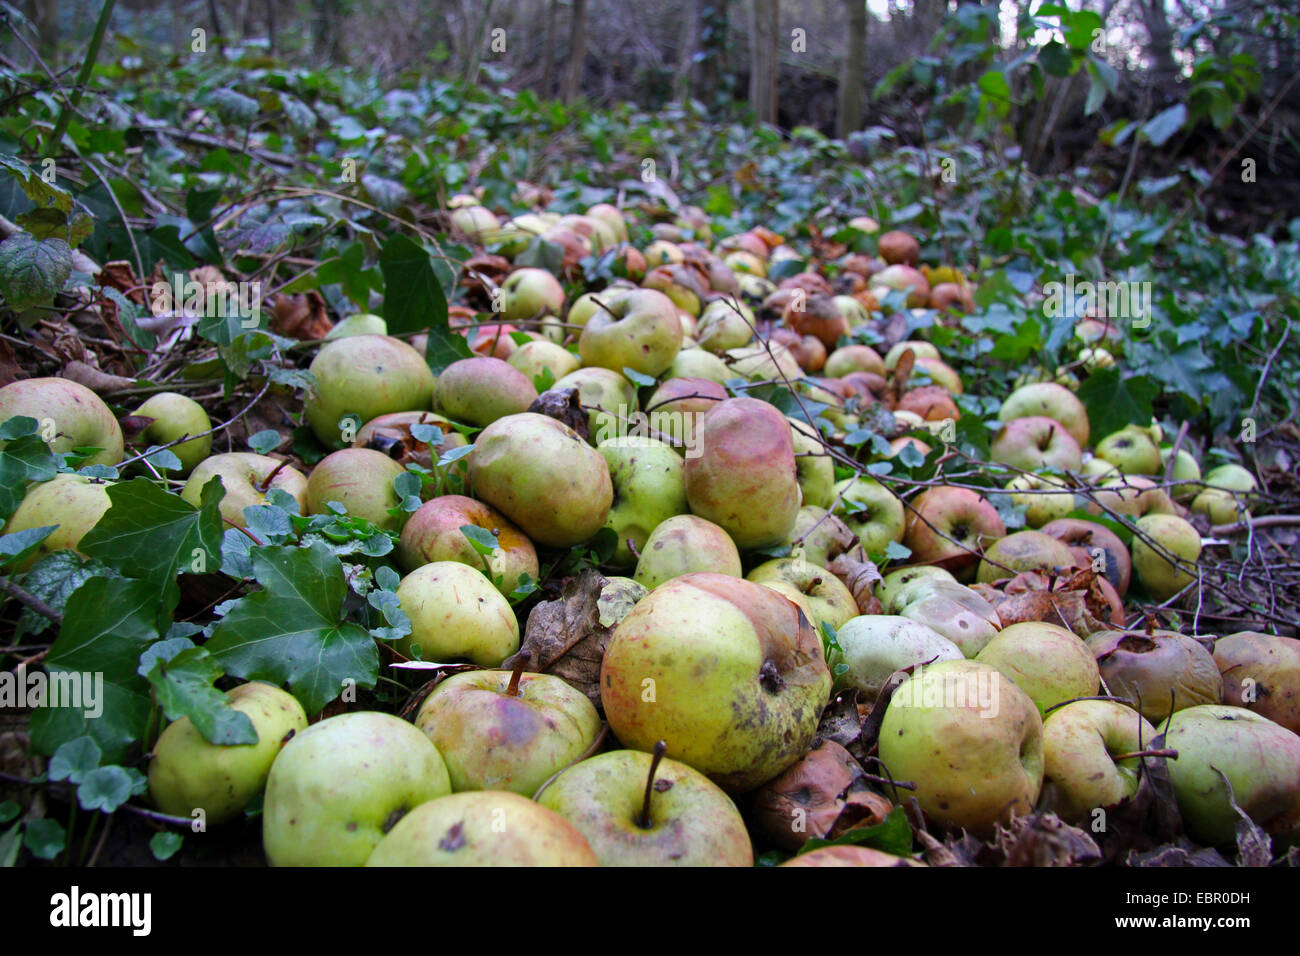 apple (Malus domestica), apples on the ground for feeding animals in a forest in winter, Germany Stock Photo